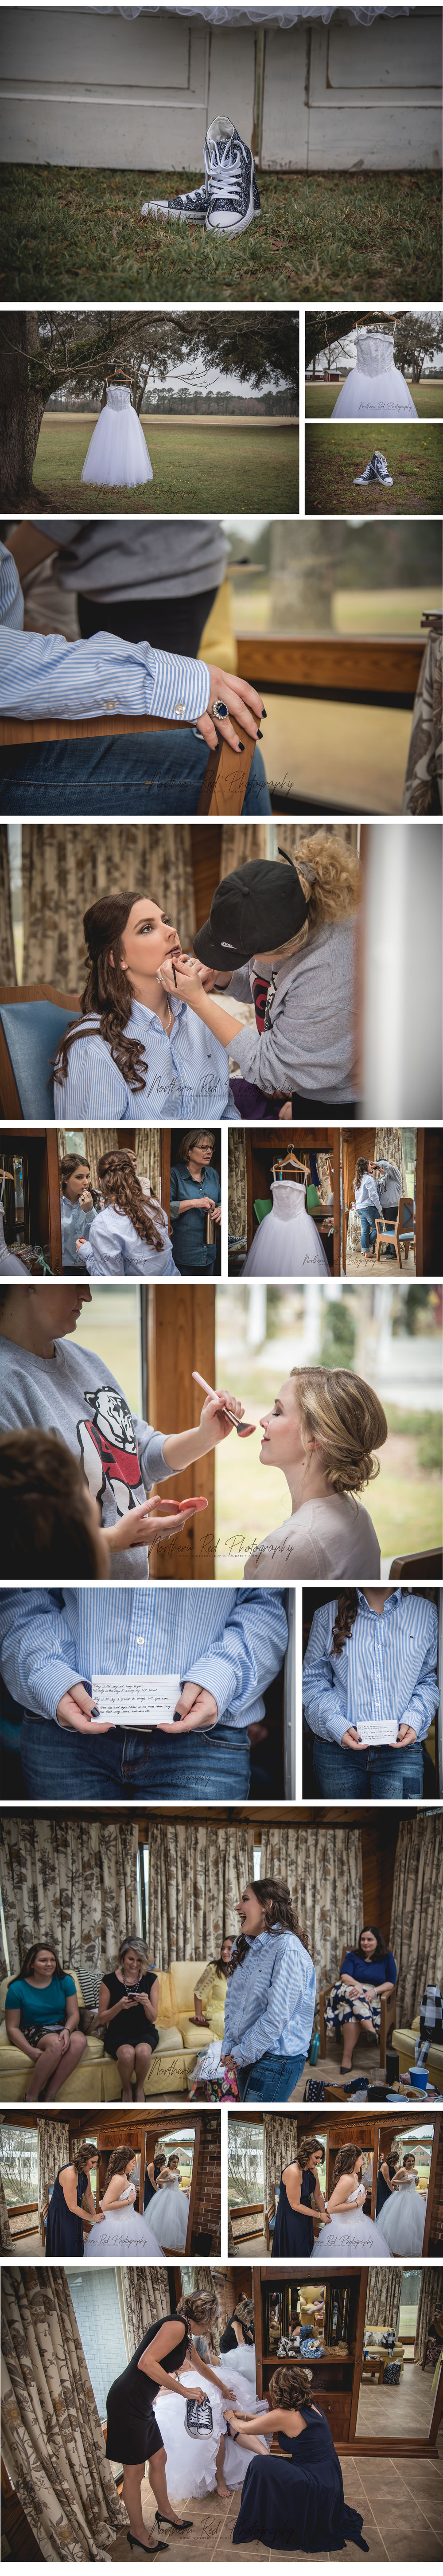 LucyBelle Farms | Northern Red Photography